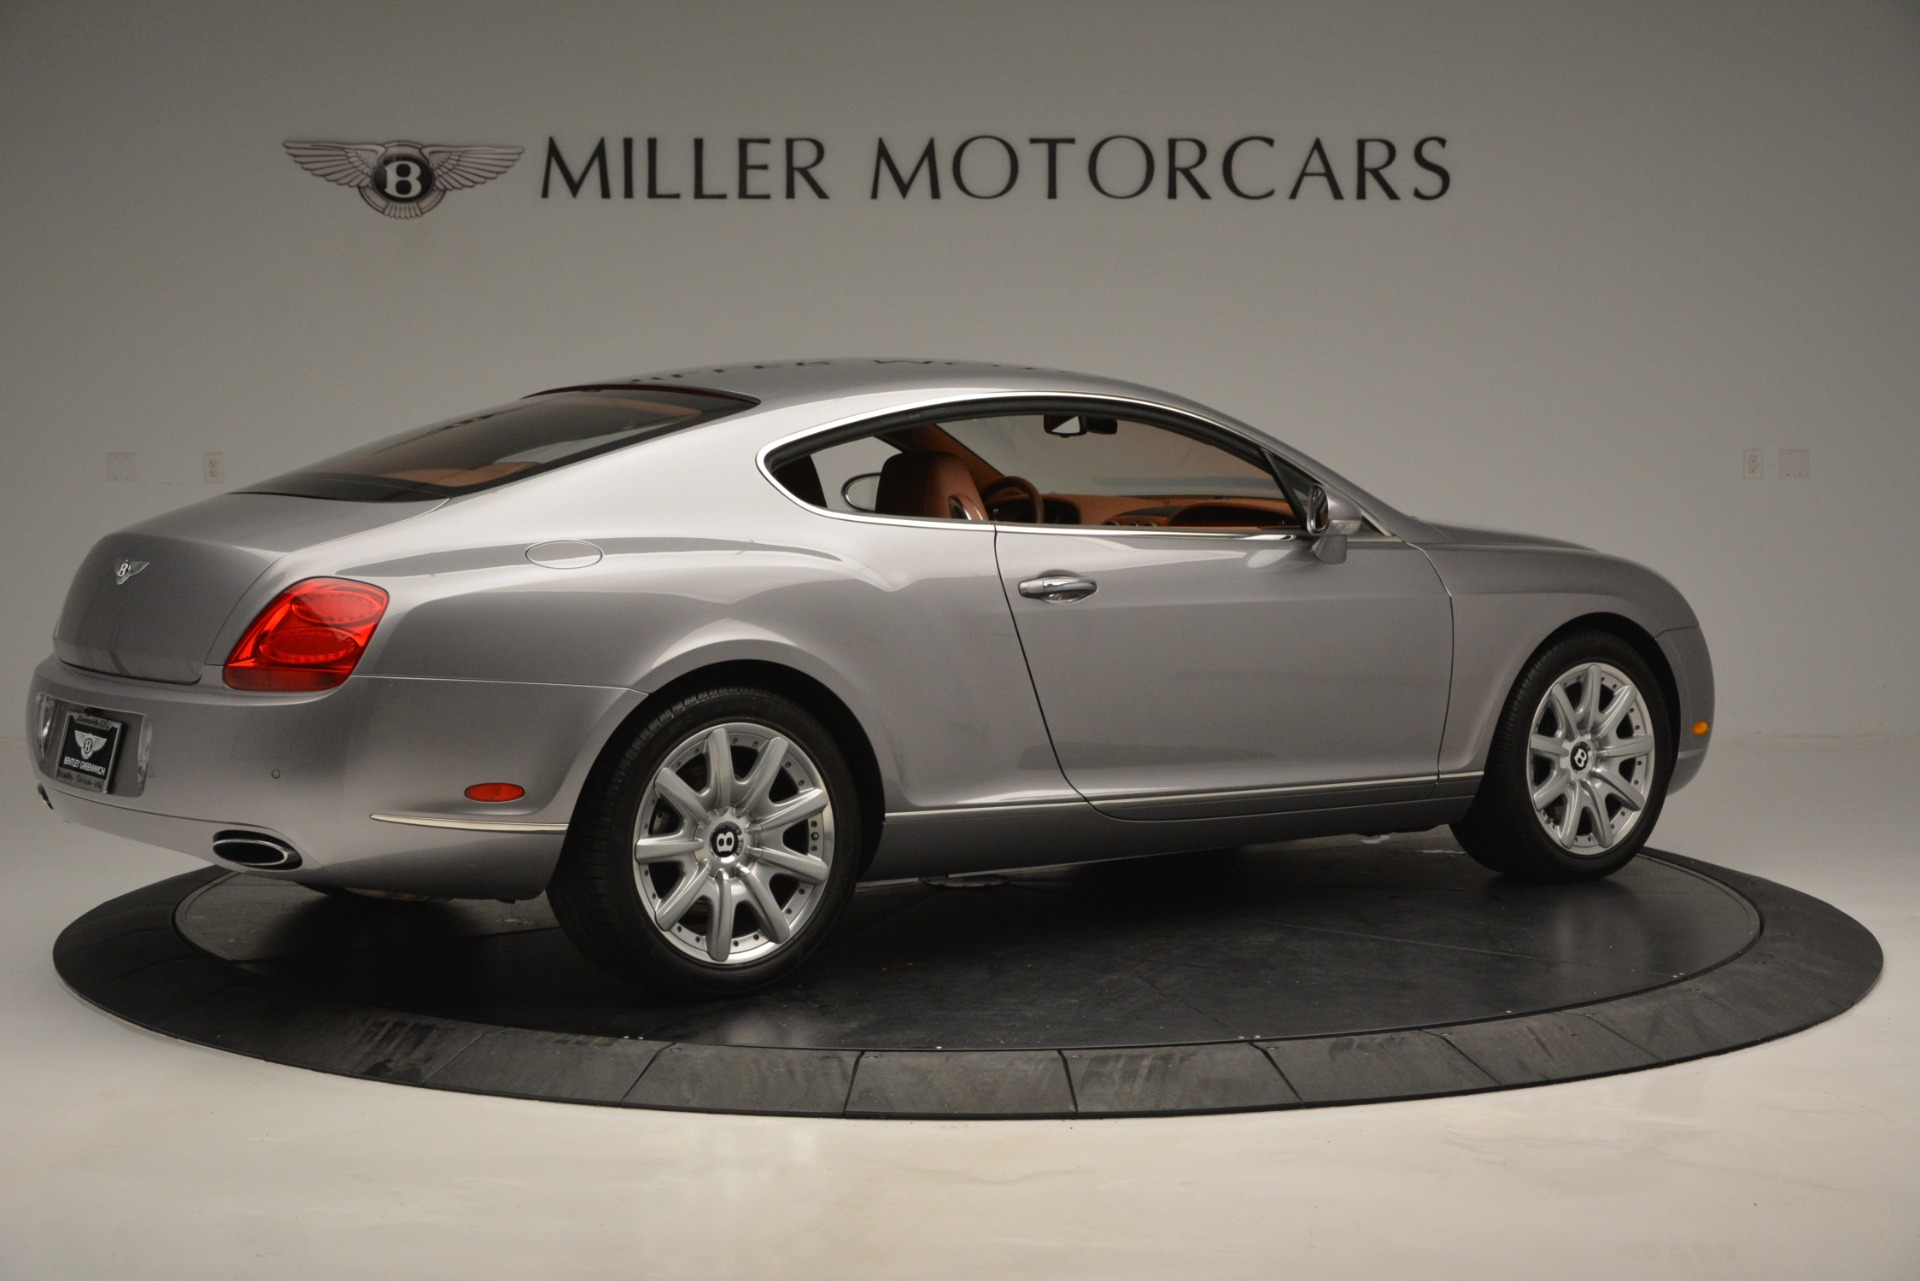 Used 2005 Bentley Continental GT GT Turbo For Sale In Greenwich, CT 2726_p8